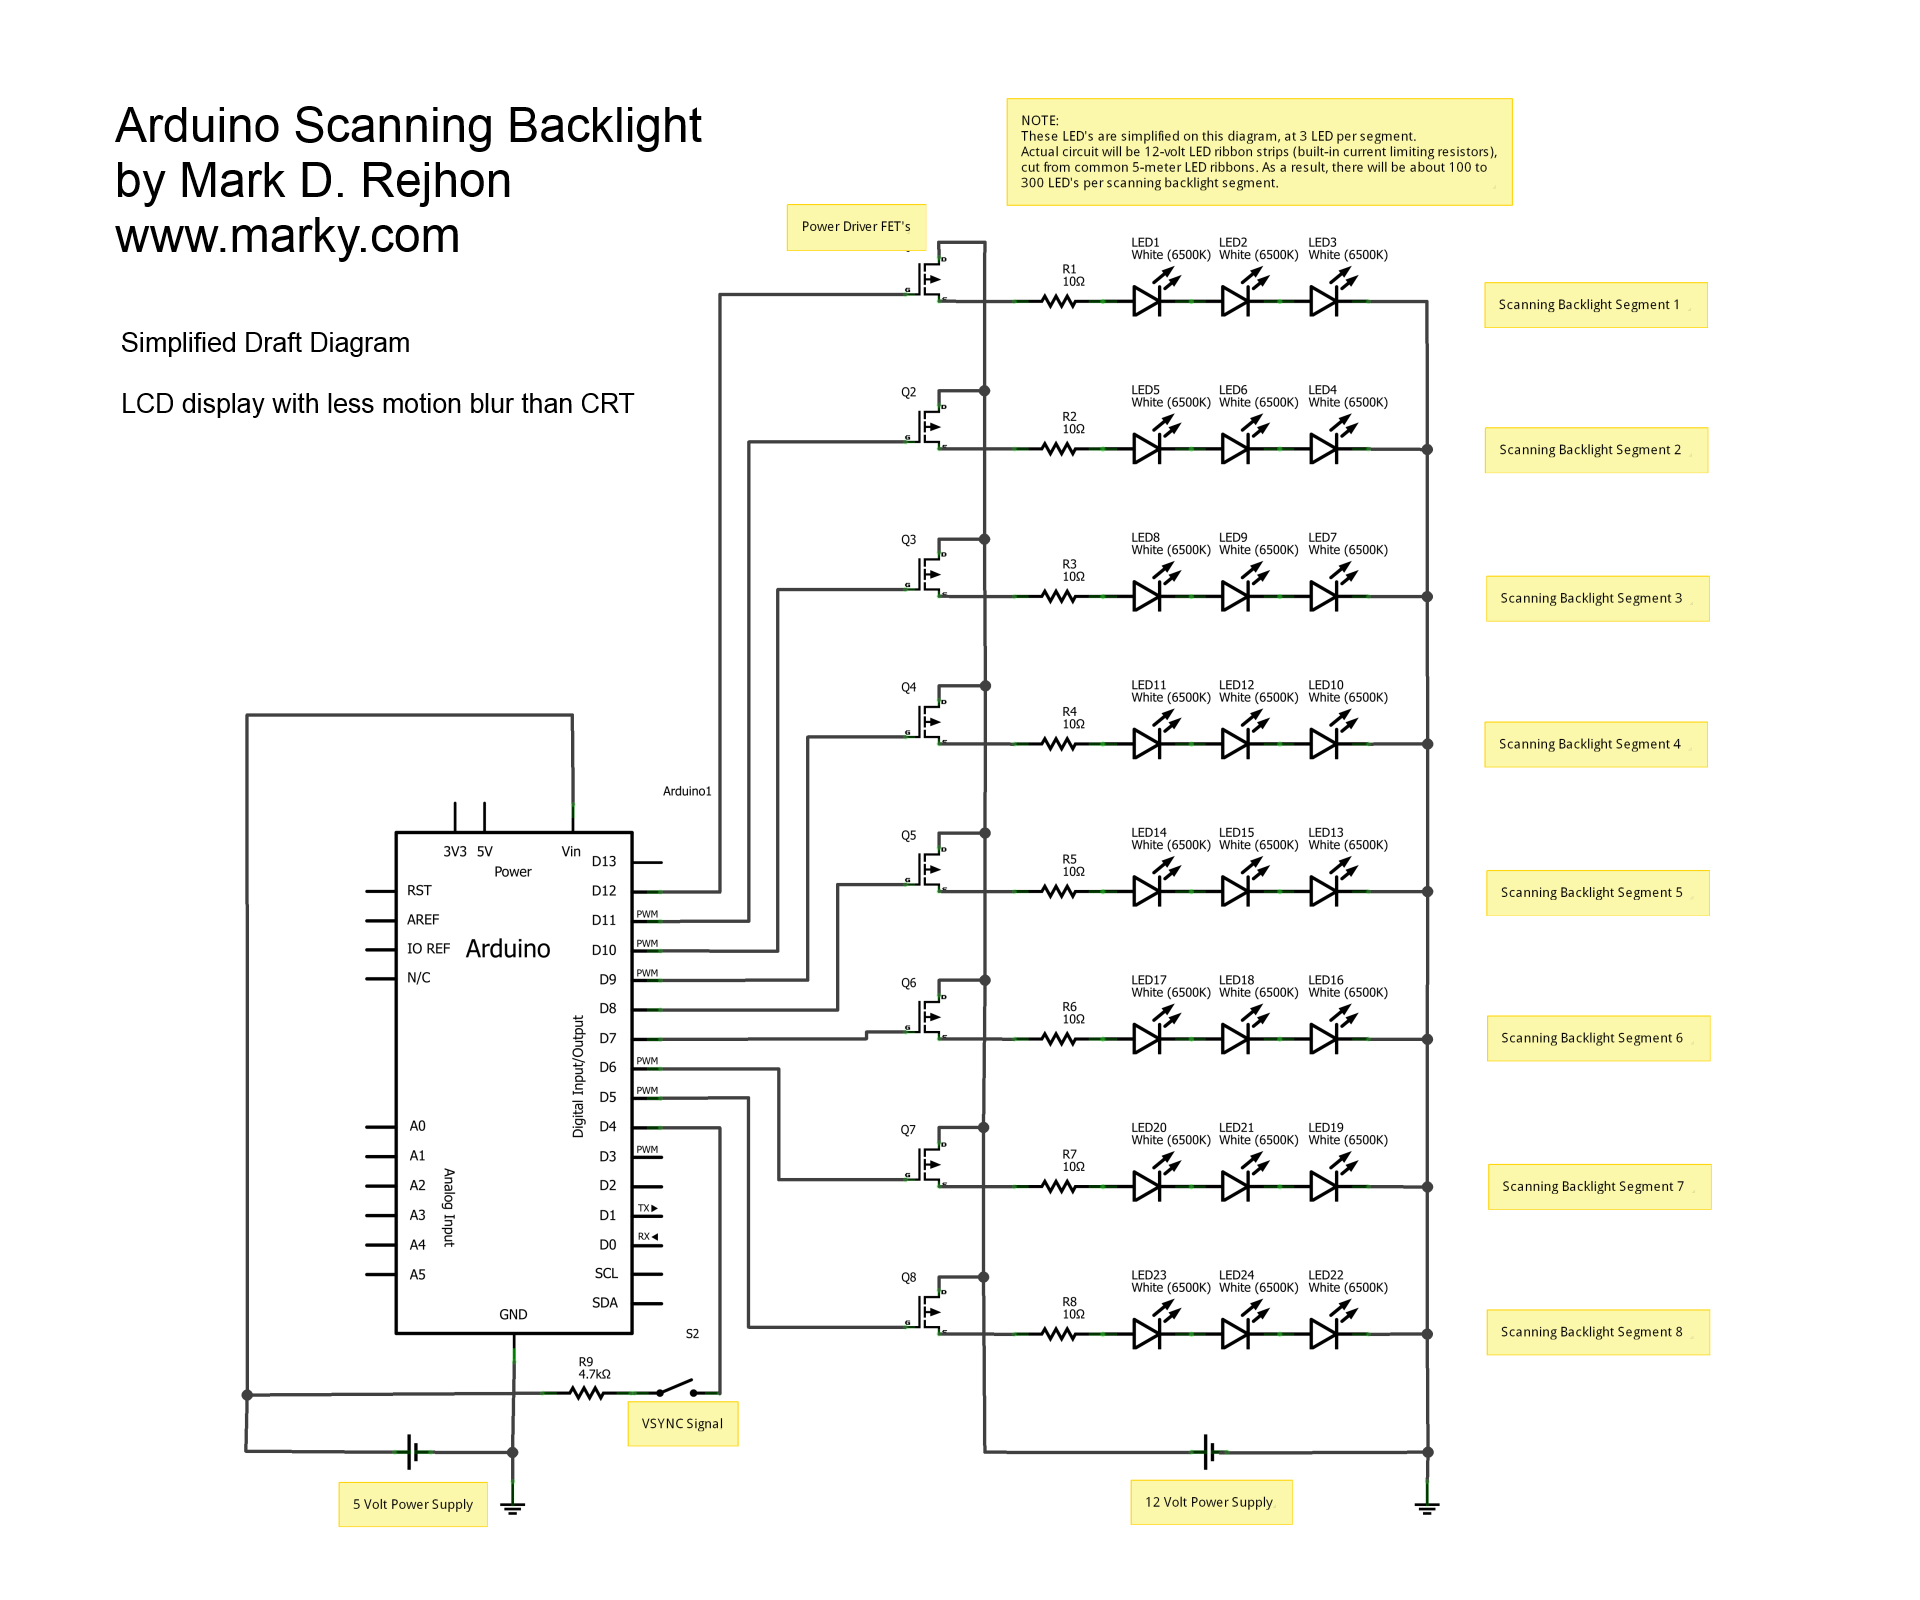 Fibaro Dimmer 2 Z Wave Plus moreover 3831 4x4x4 Led Cube Using 3 Pins Of Msp430 Launchpad further Arduino Scanning Backlight additionally  additionally Servo Wiring Diagram. on led circuit diagrams